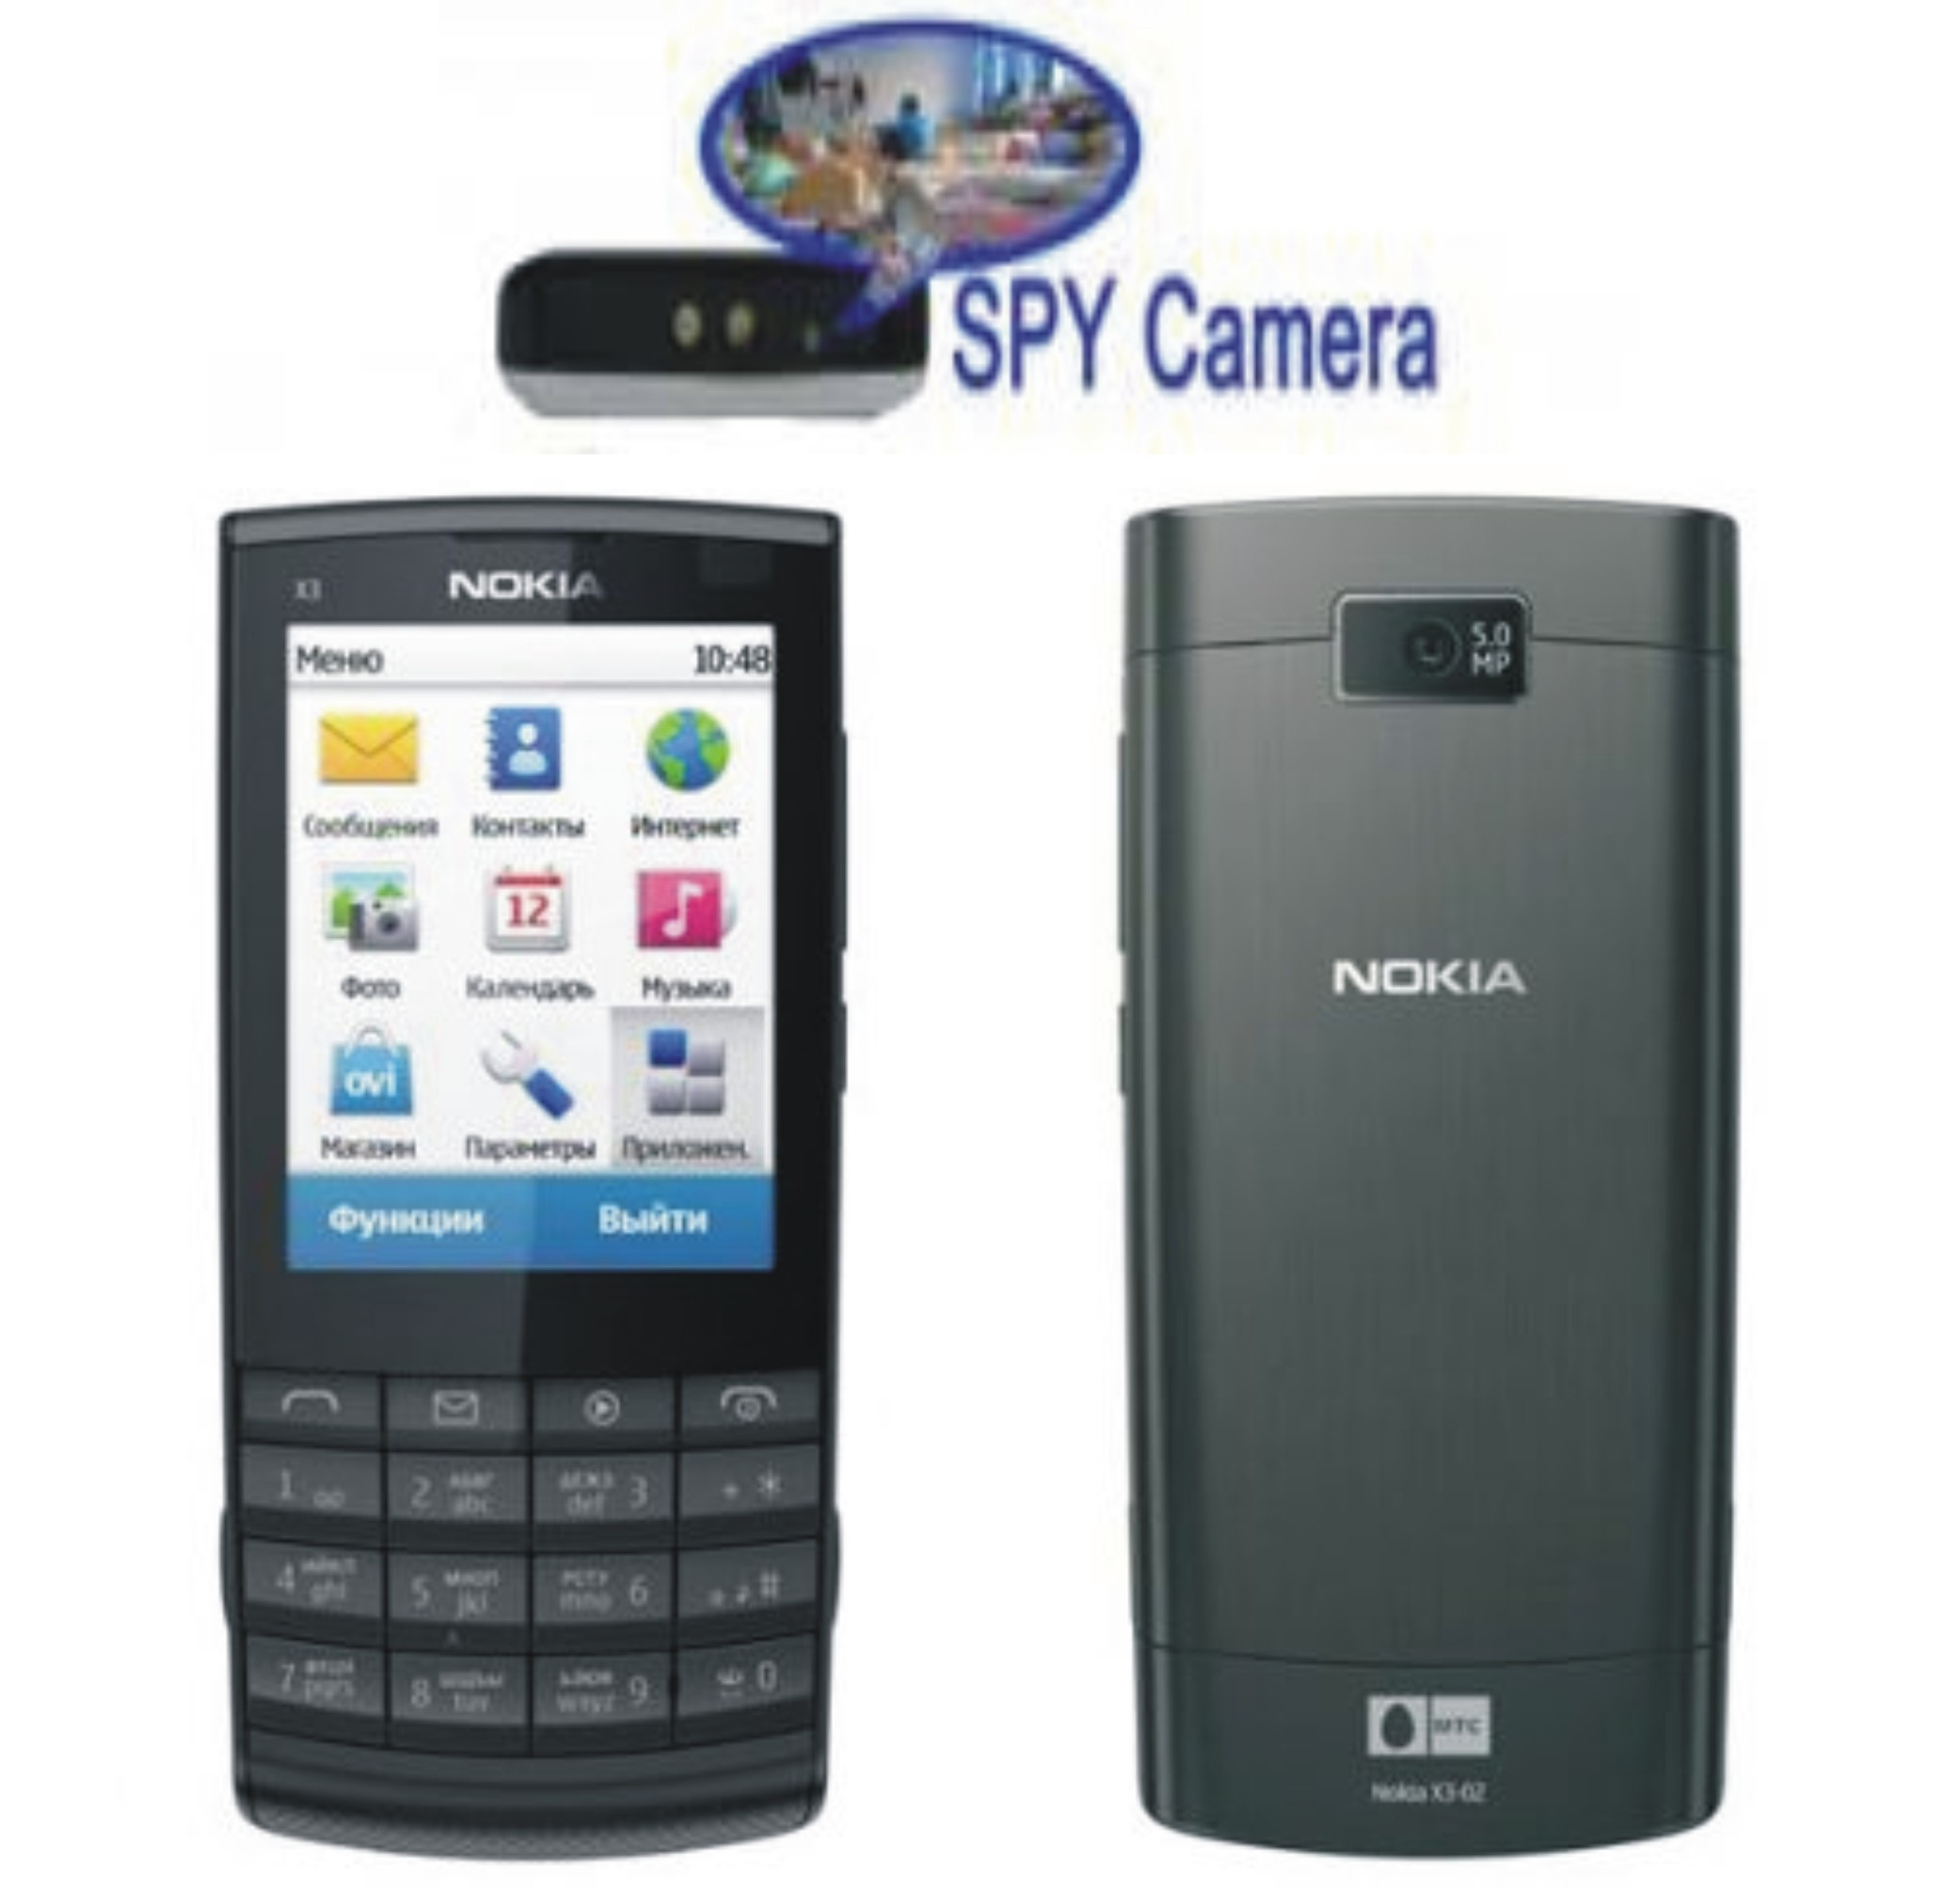 Spy Camera In Nokia Phone Touch Screen In Mehkar